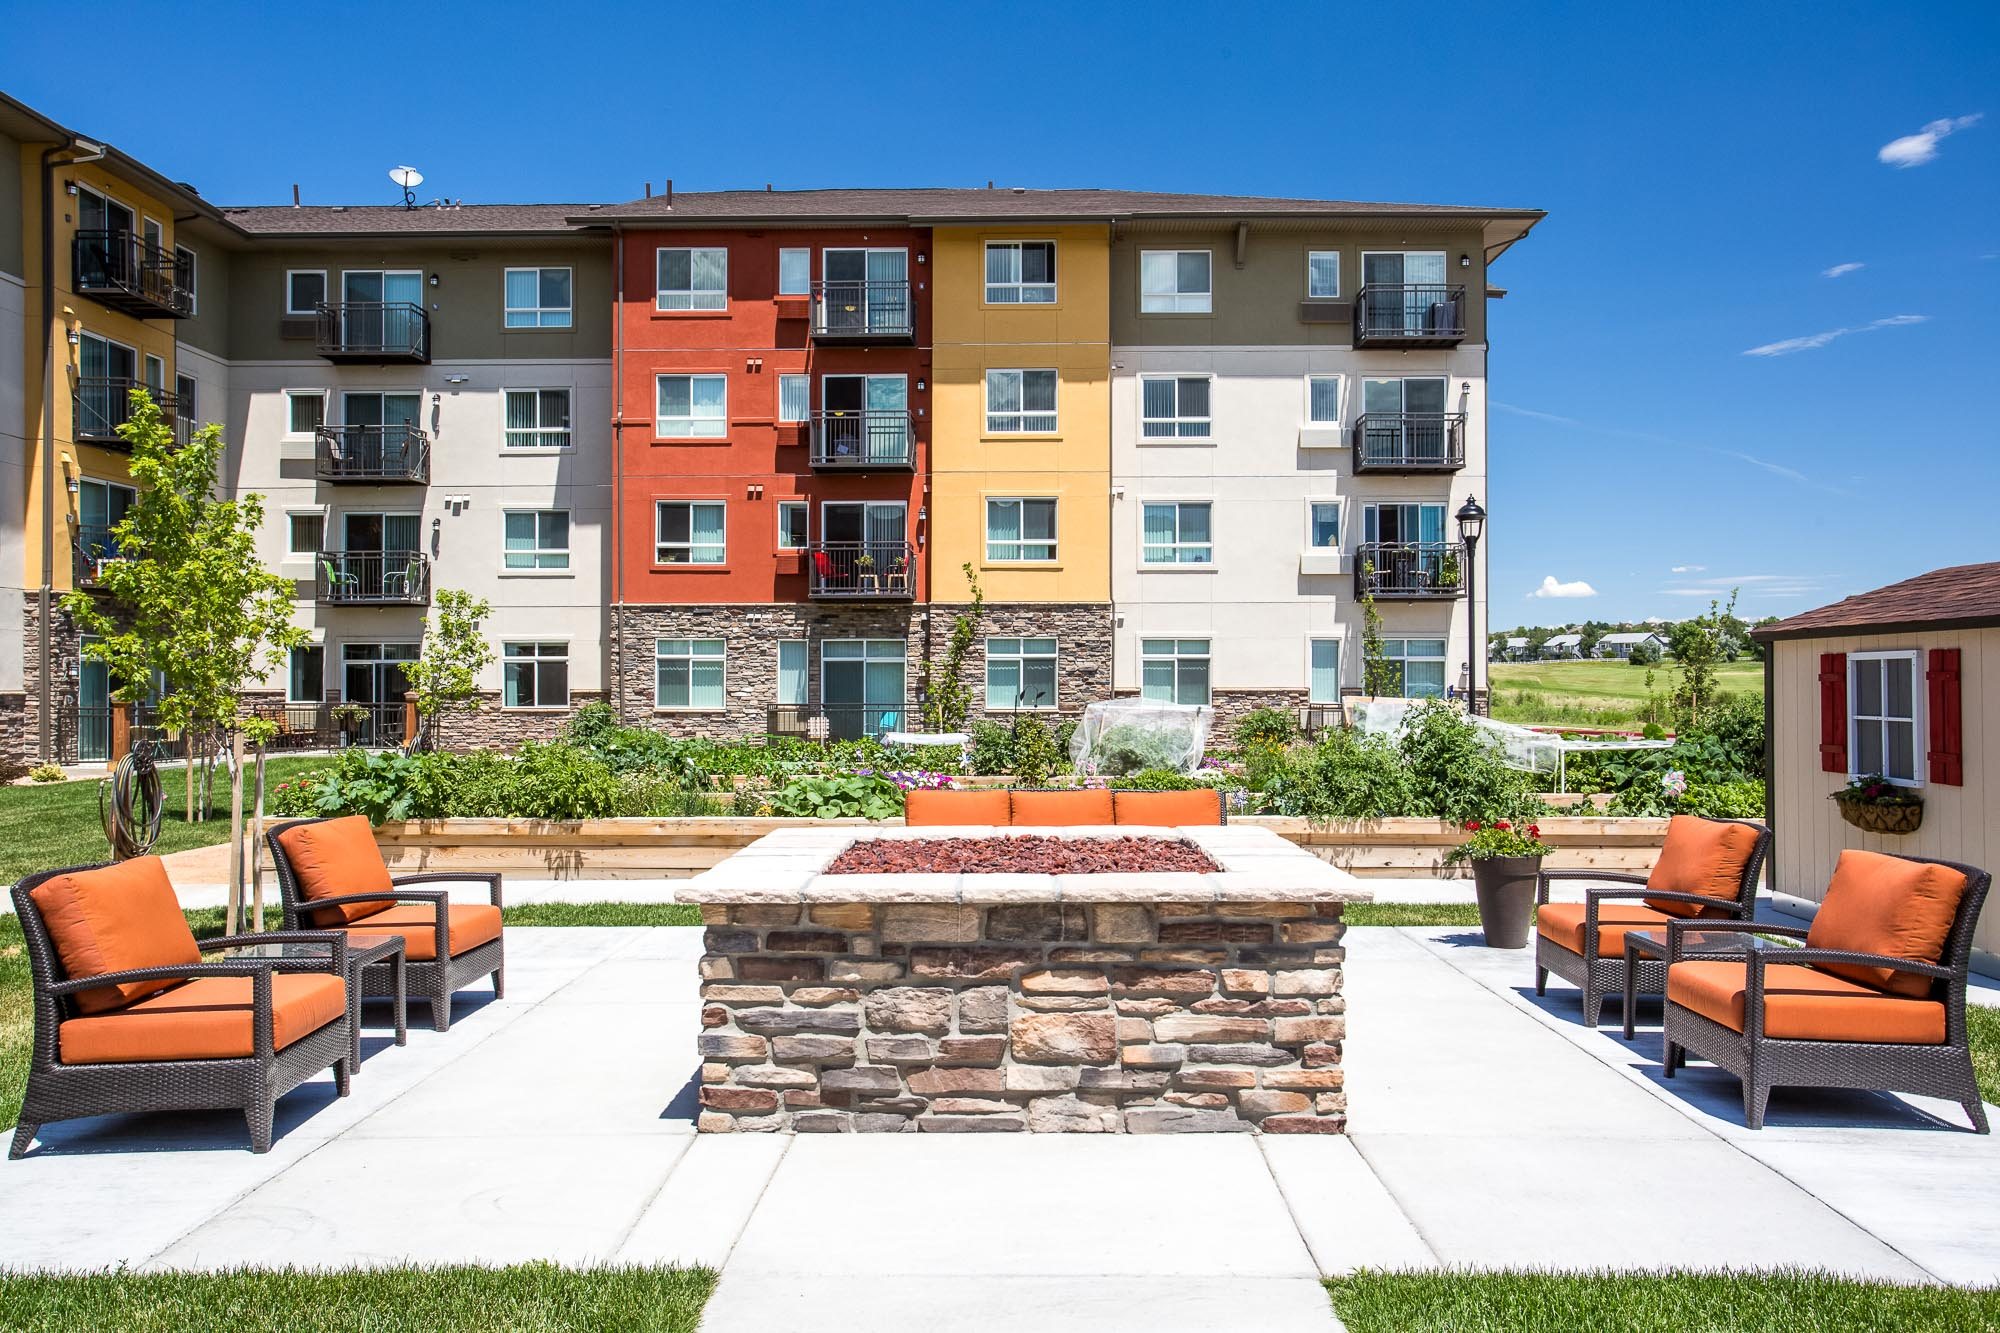 Affinity at Colorado Springs Architectural Photography